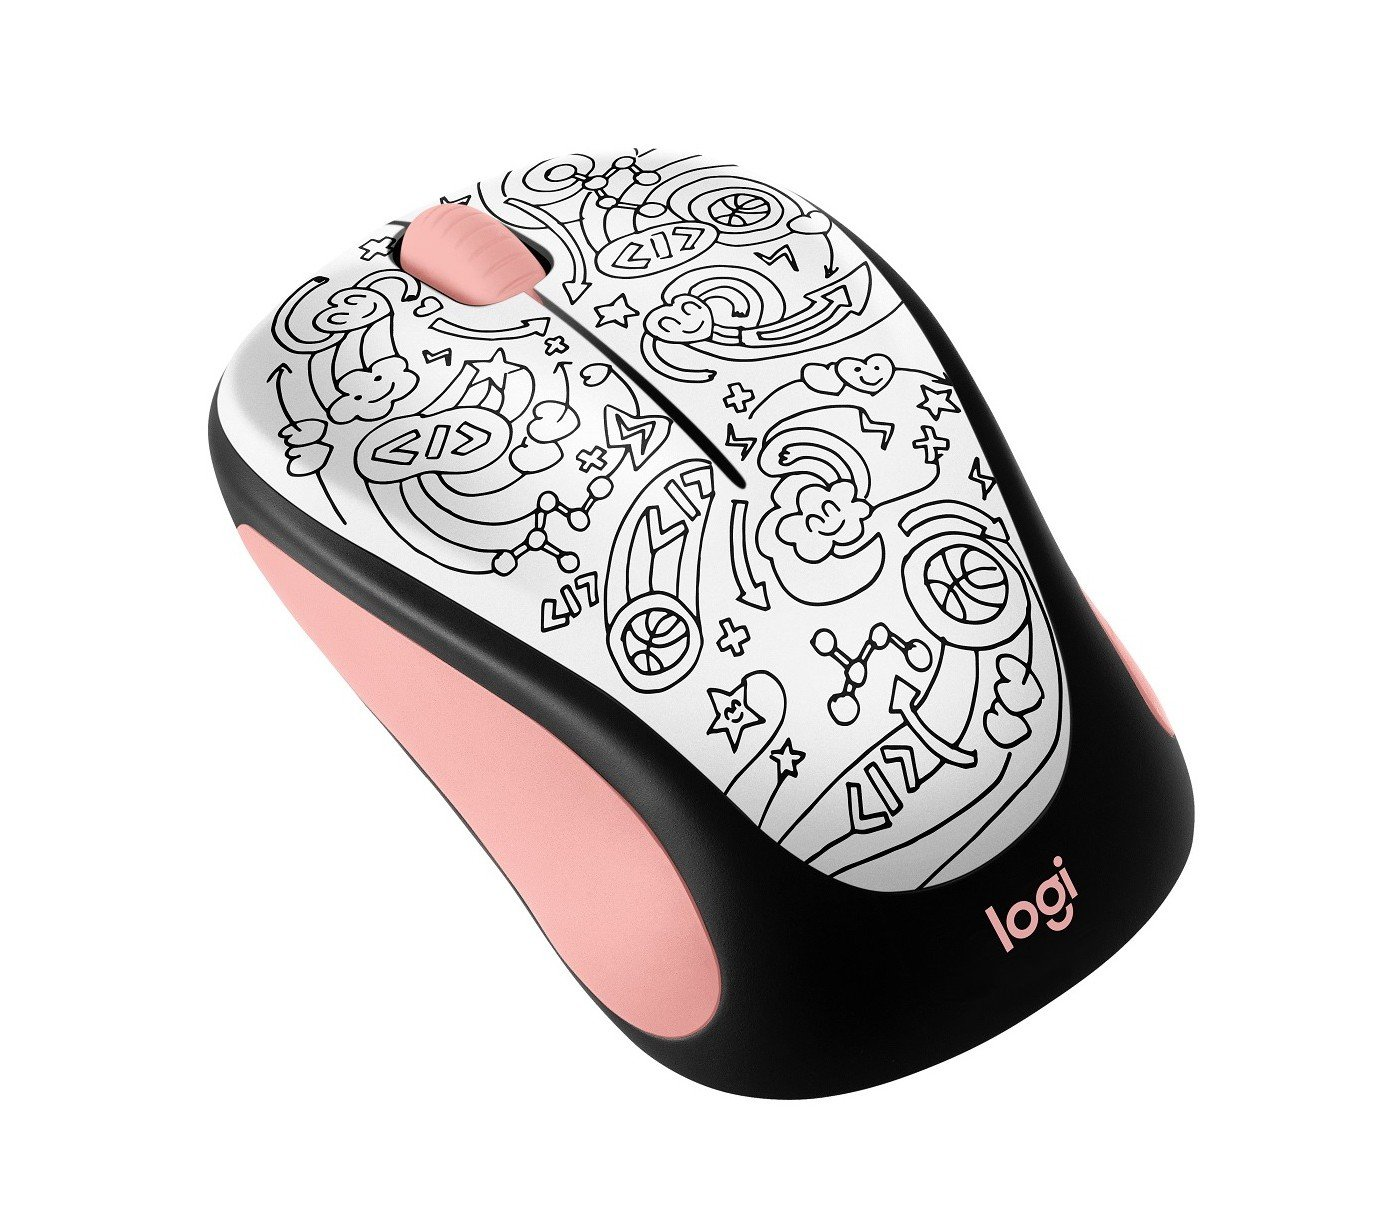 040e9002b54 Amazon.com: Logitech M317 Wireless Mouse - Pink Doodle Brainstorm Pink  (910-005308): Computers & Accessories